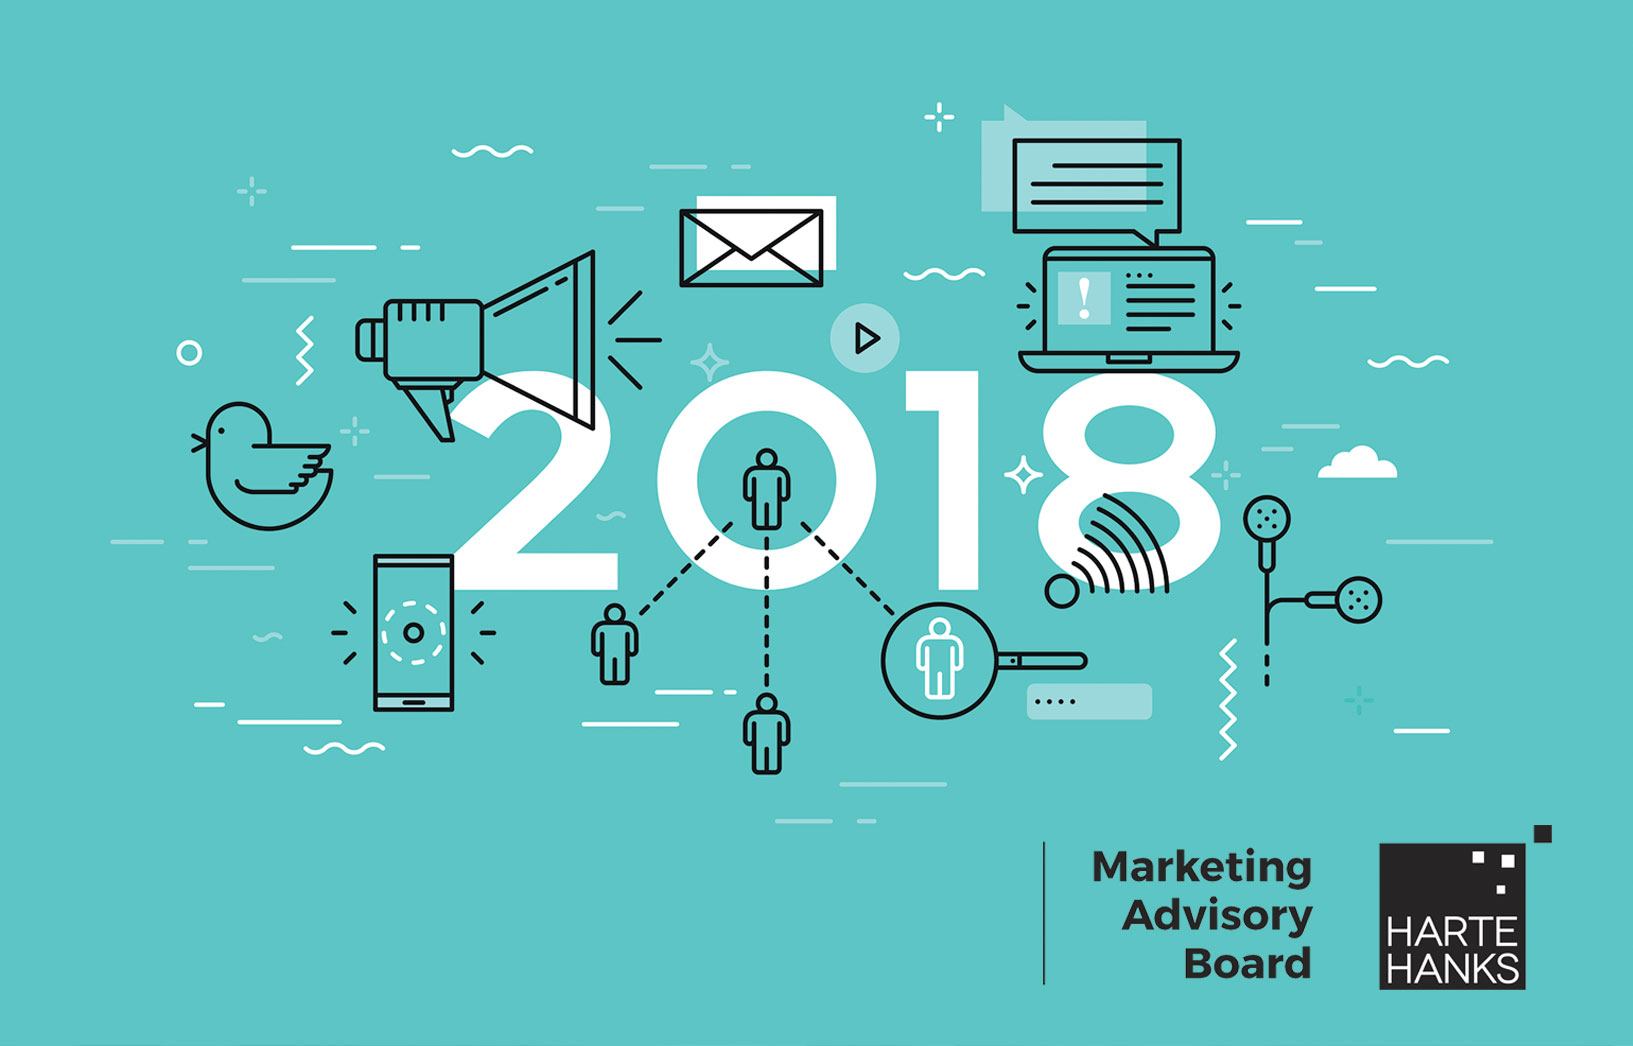 2018 marketing predictions from the Harte Hanks Marketing Advisory Board